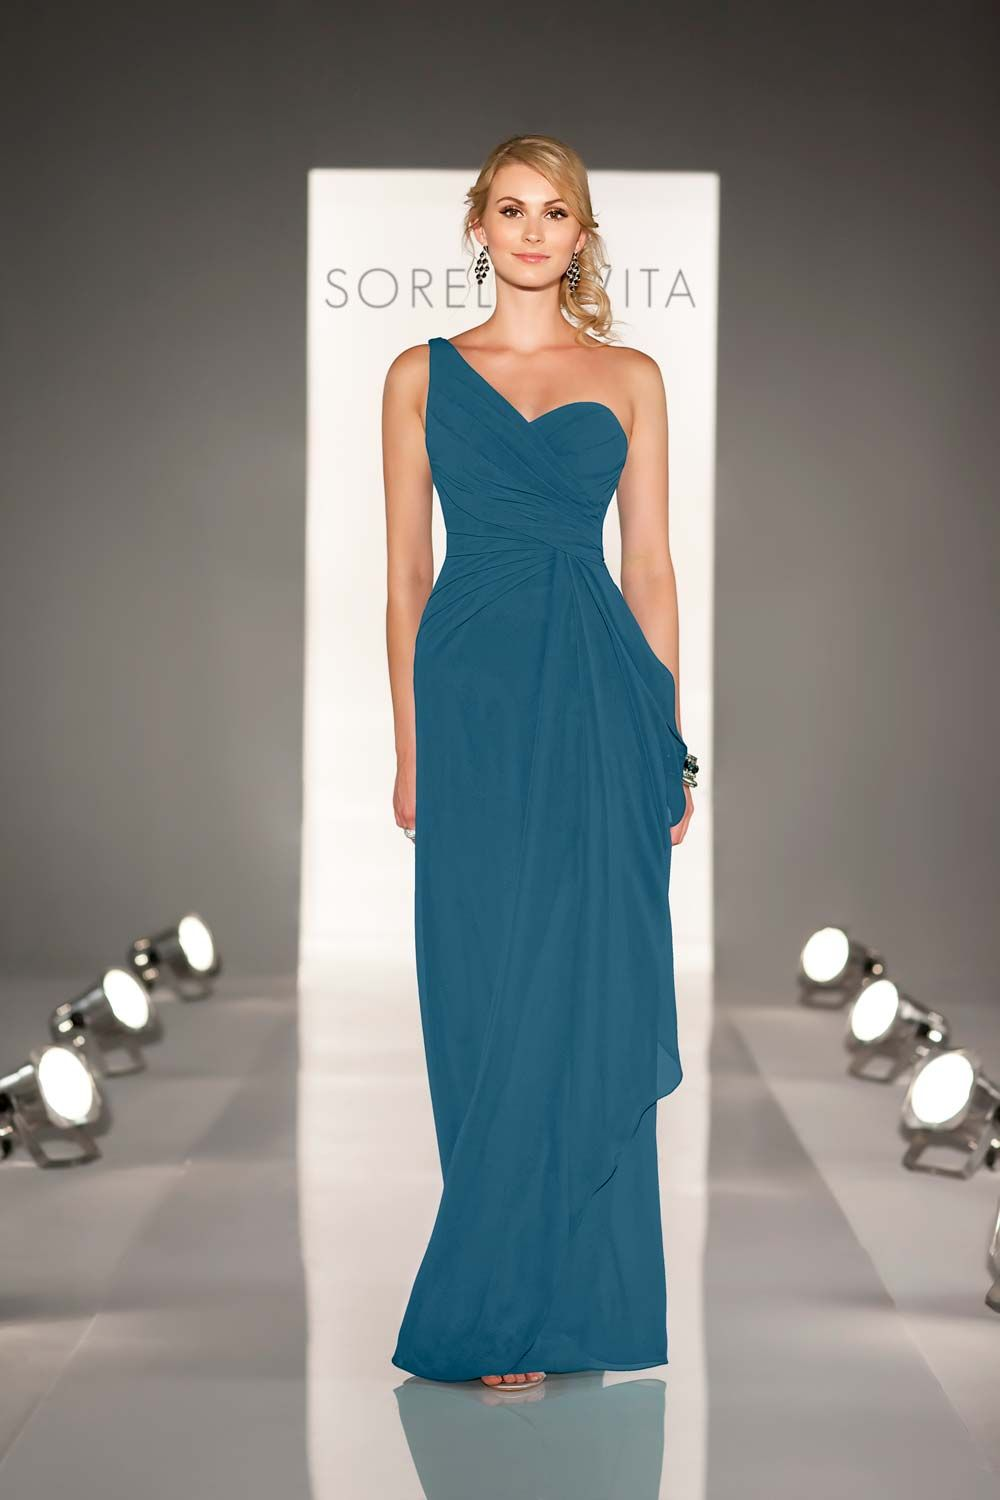 Teal Bridesmaid Dresses: 15 of Our Favourite Styles | Seda y Vestiditos